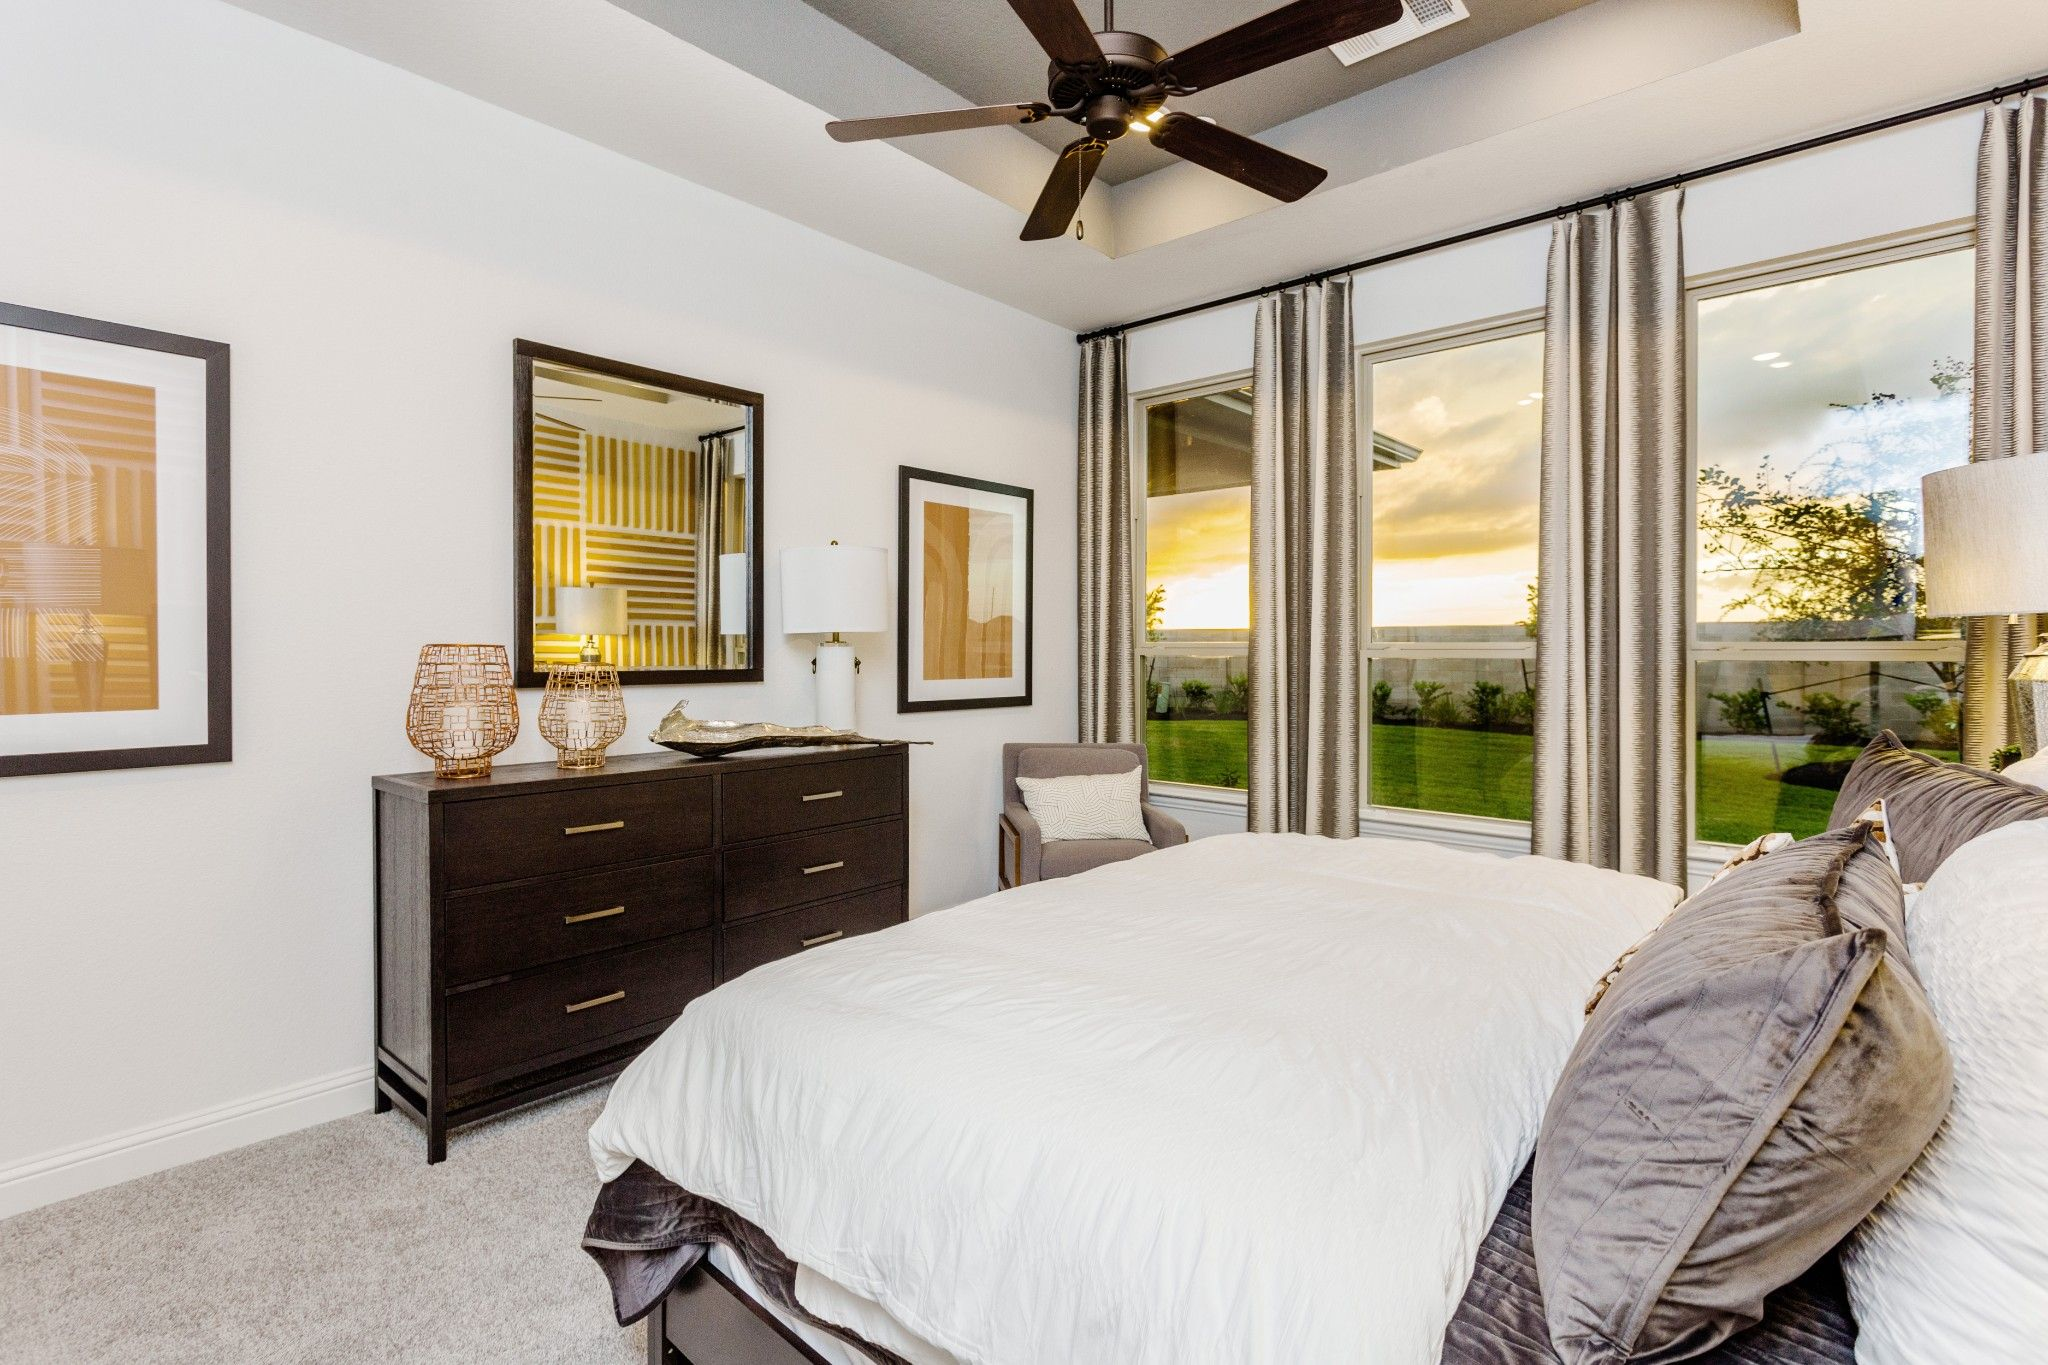 'Northstar 50s' by HistoryMaker Homes in Fort Worth